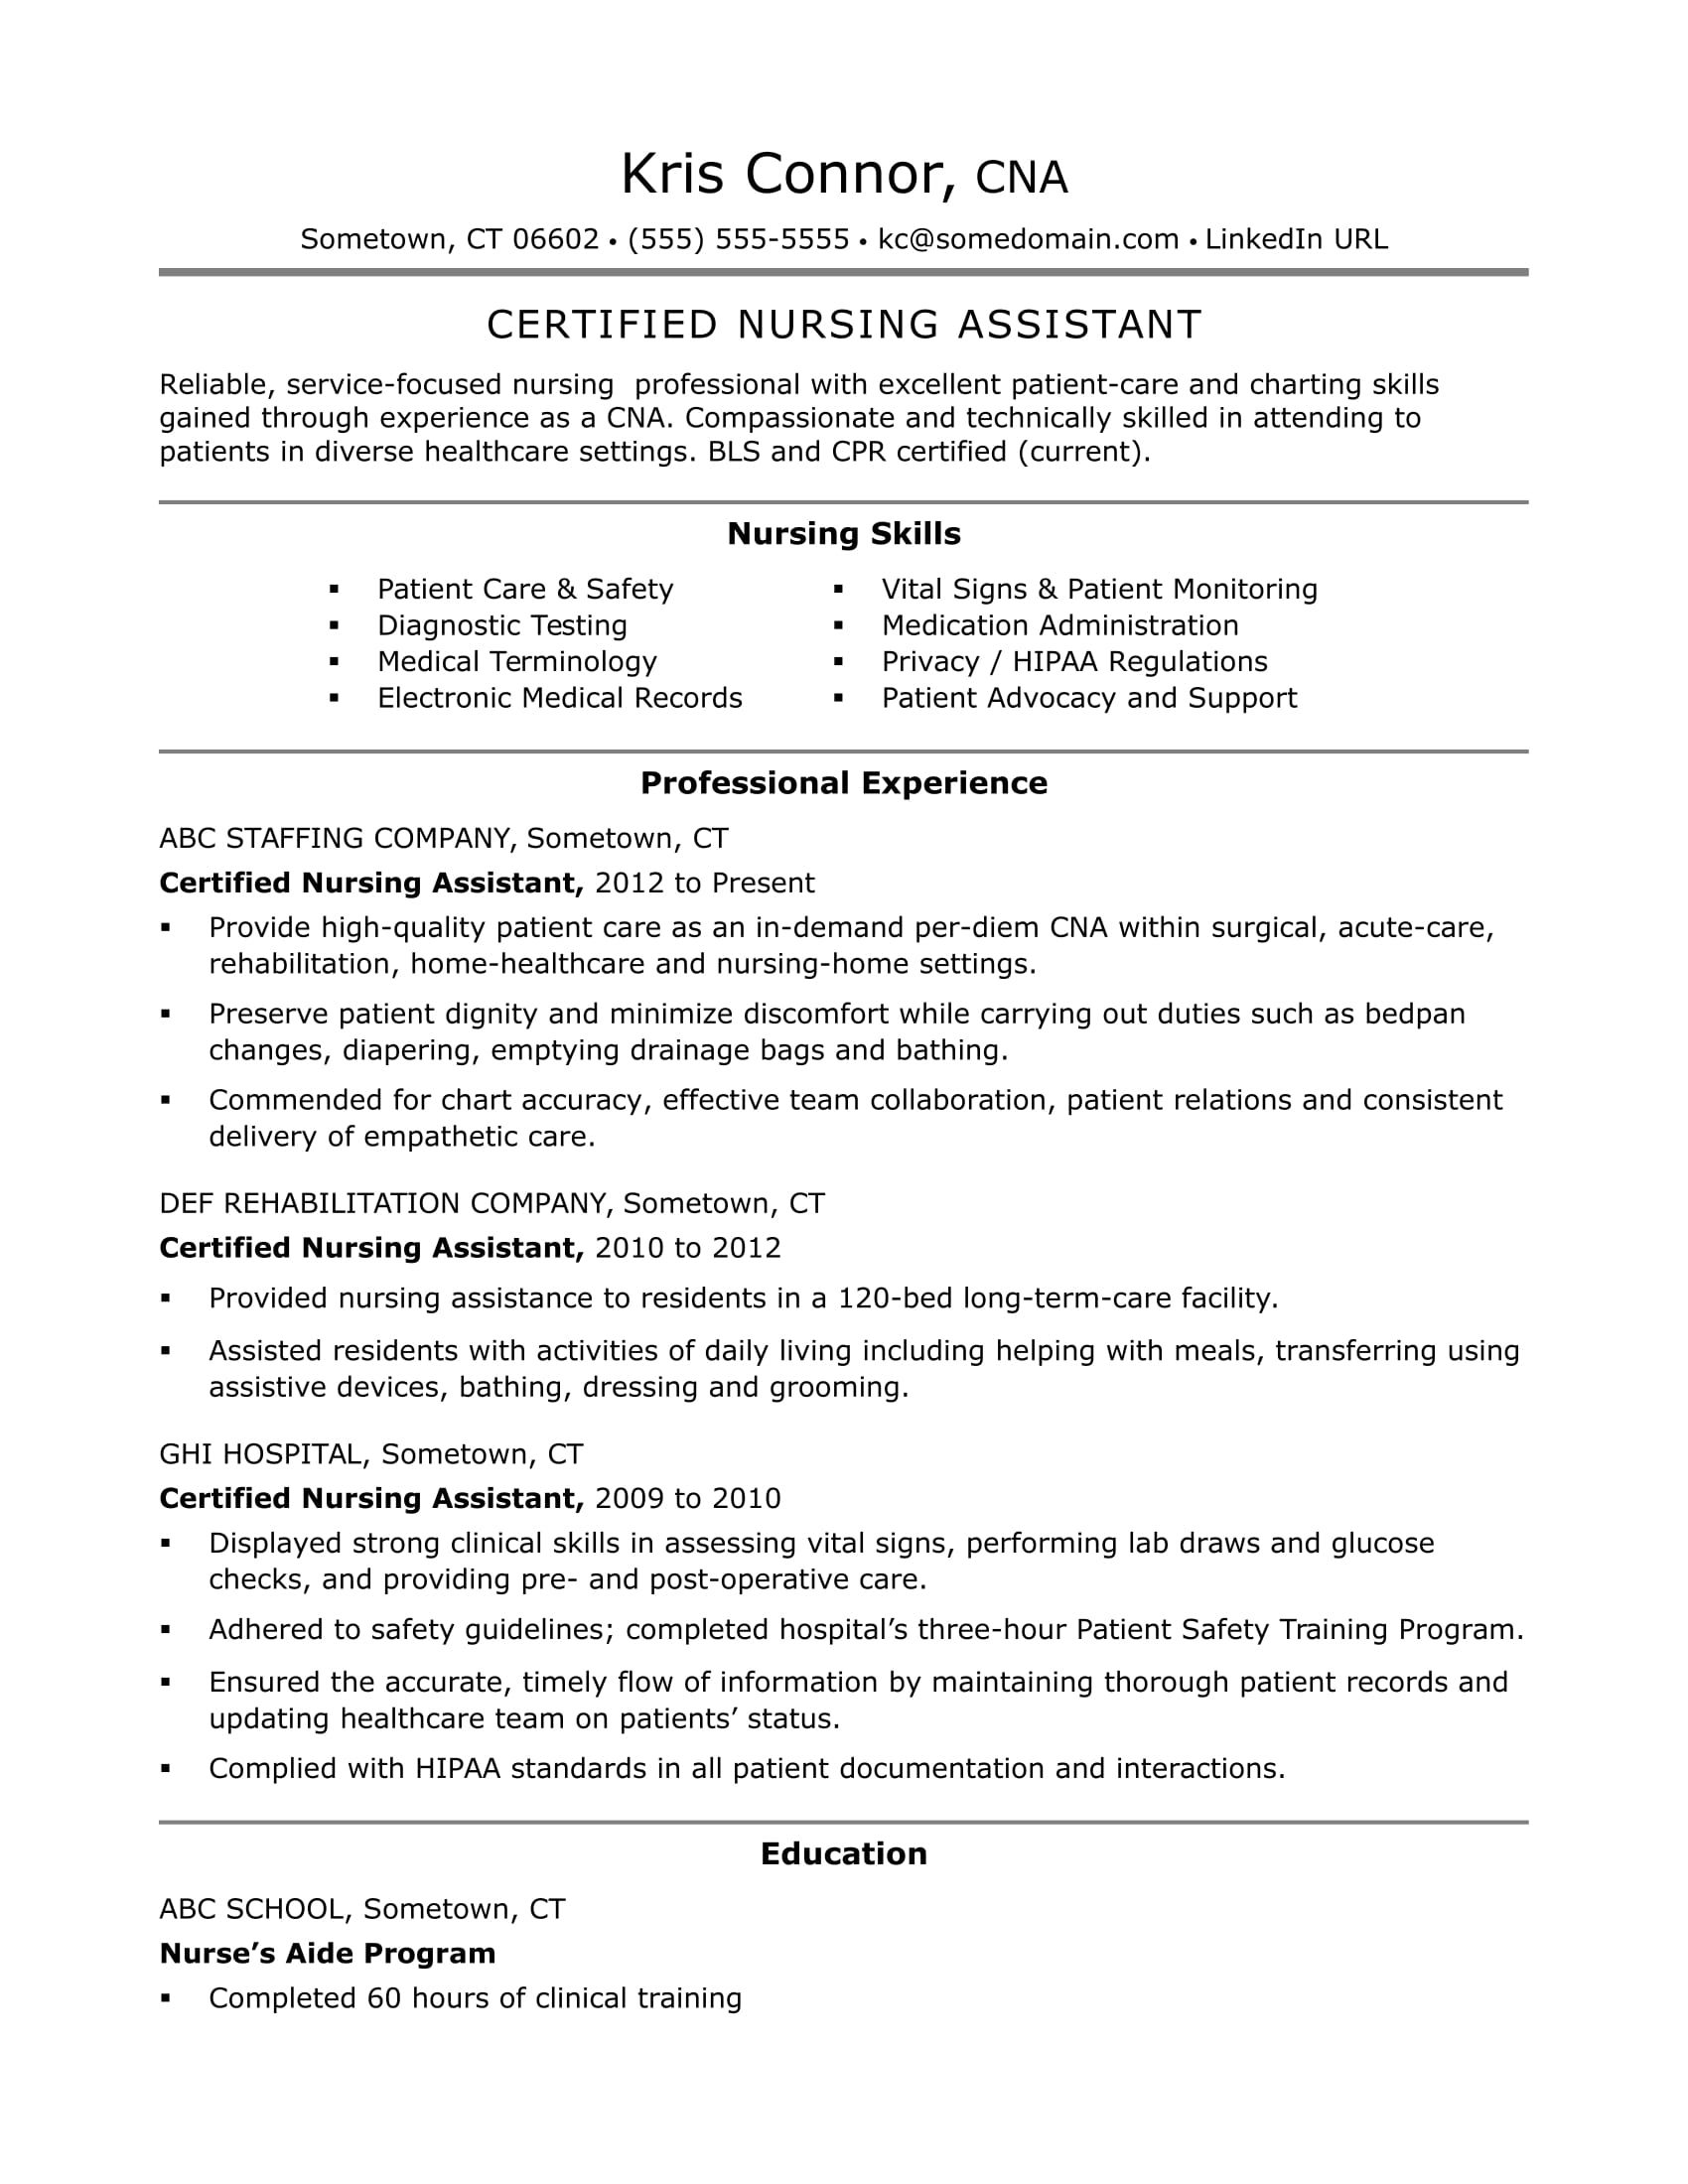 Cna resume examples skills for cnas monster cna resume example yelopaper